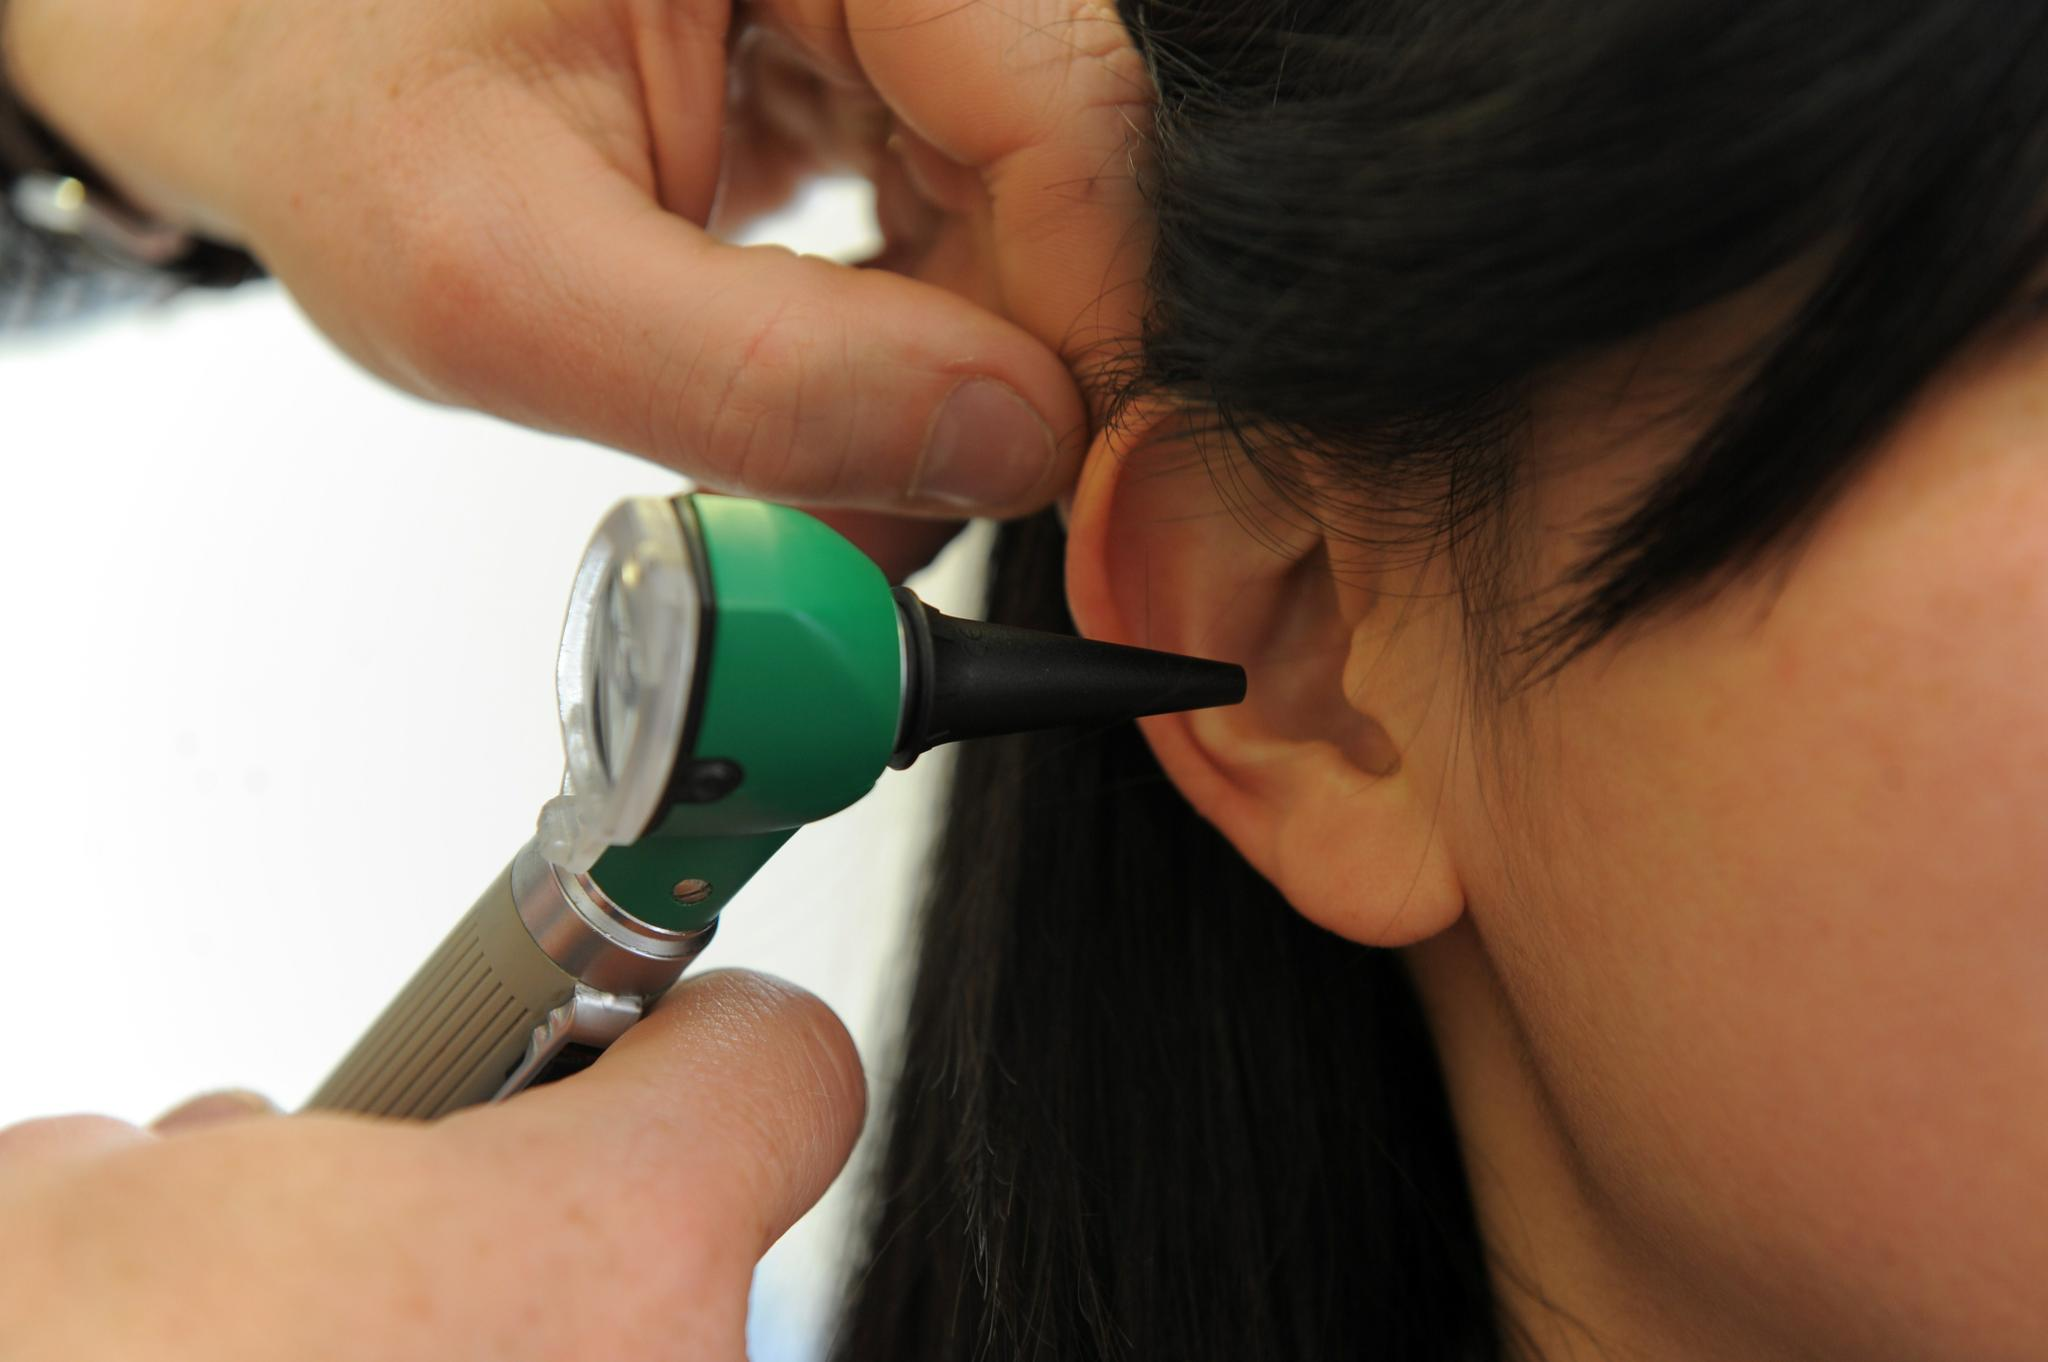 The gene implant therapy may be able to cure a variety of hearing disorders caused by genetic mutation.